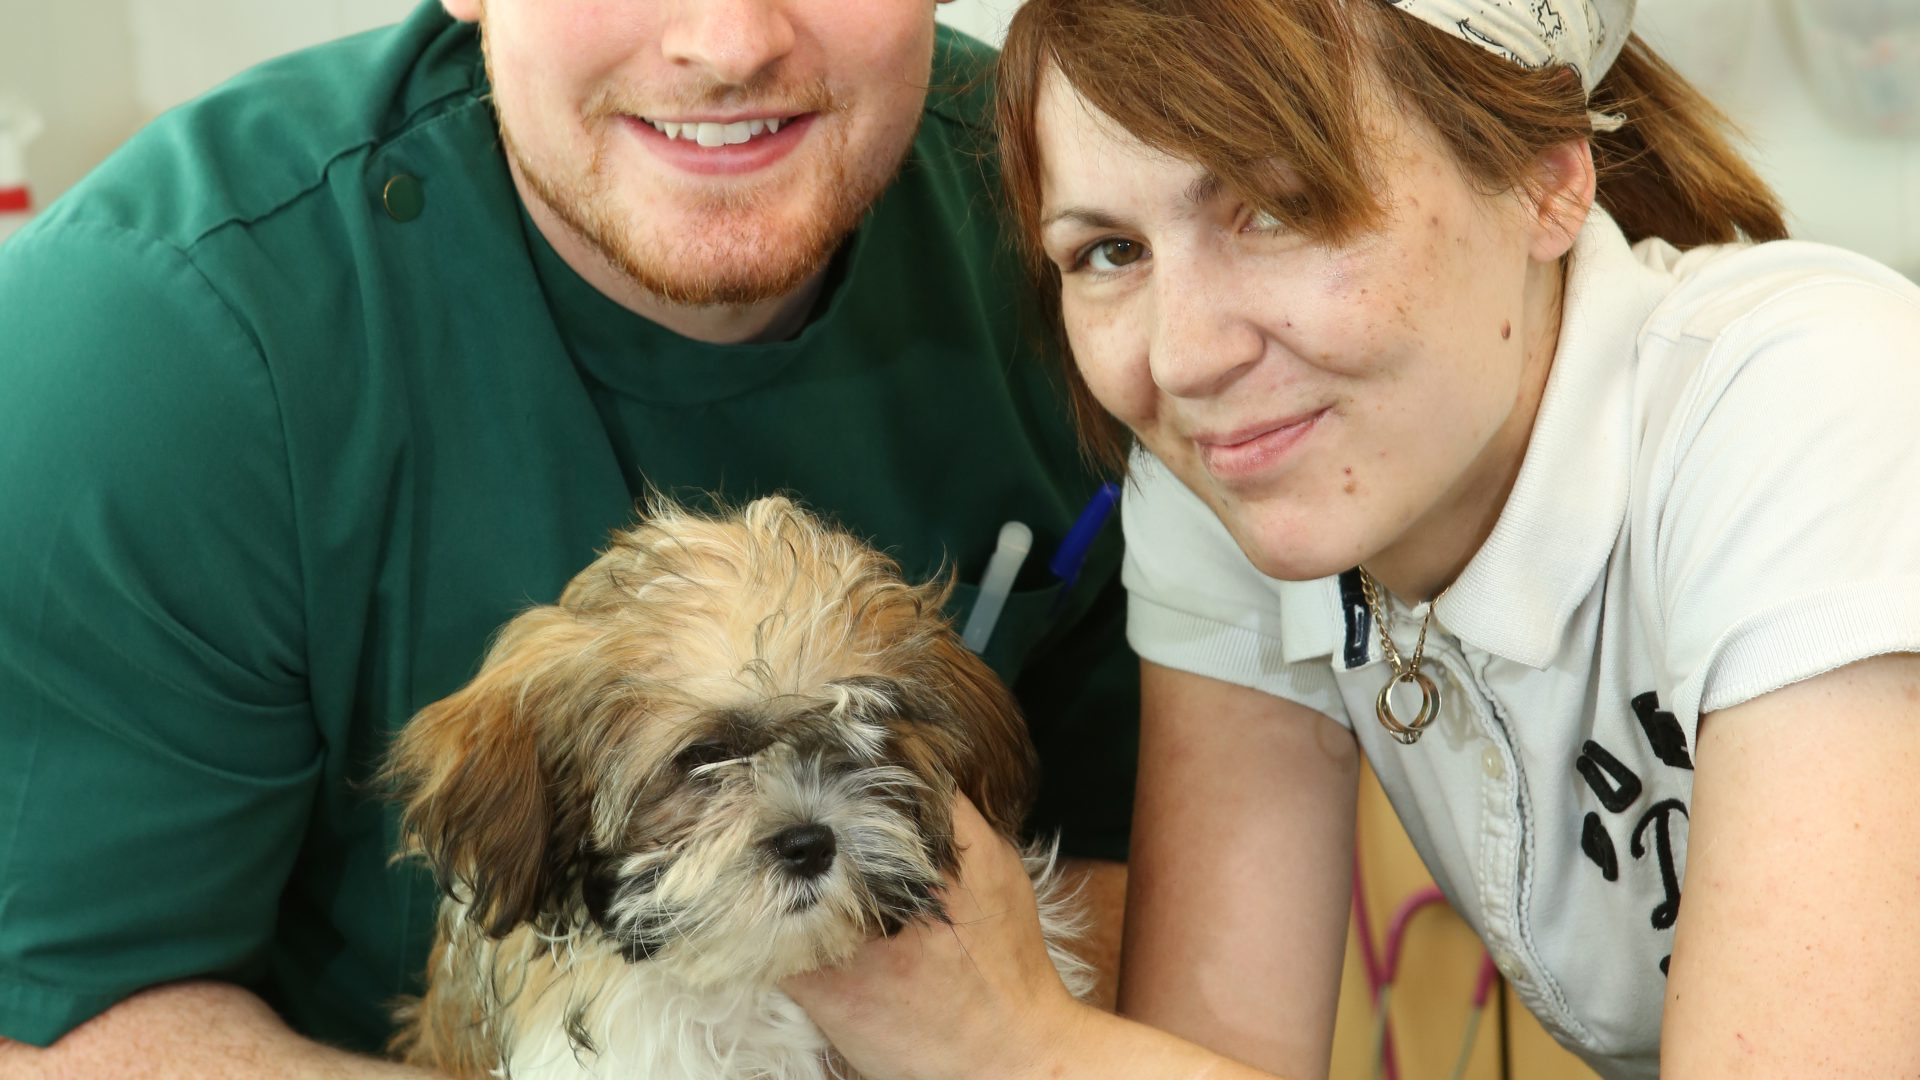 Puppy makes miracle recovery after massive drug overdose